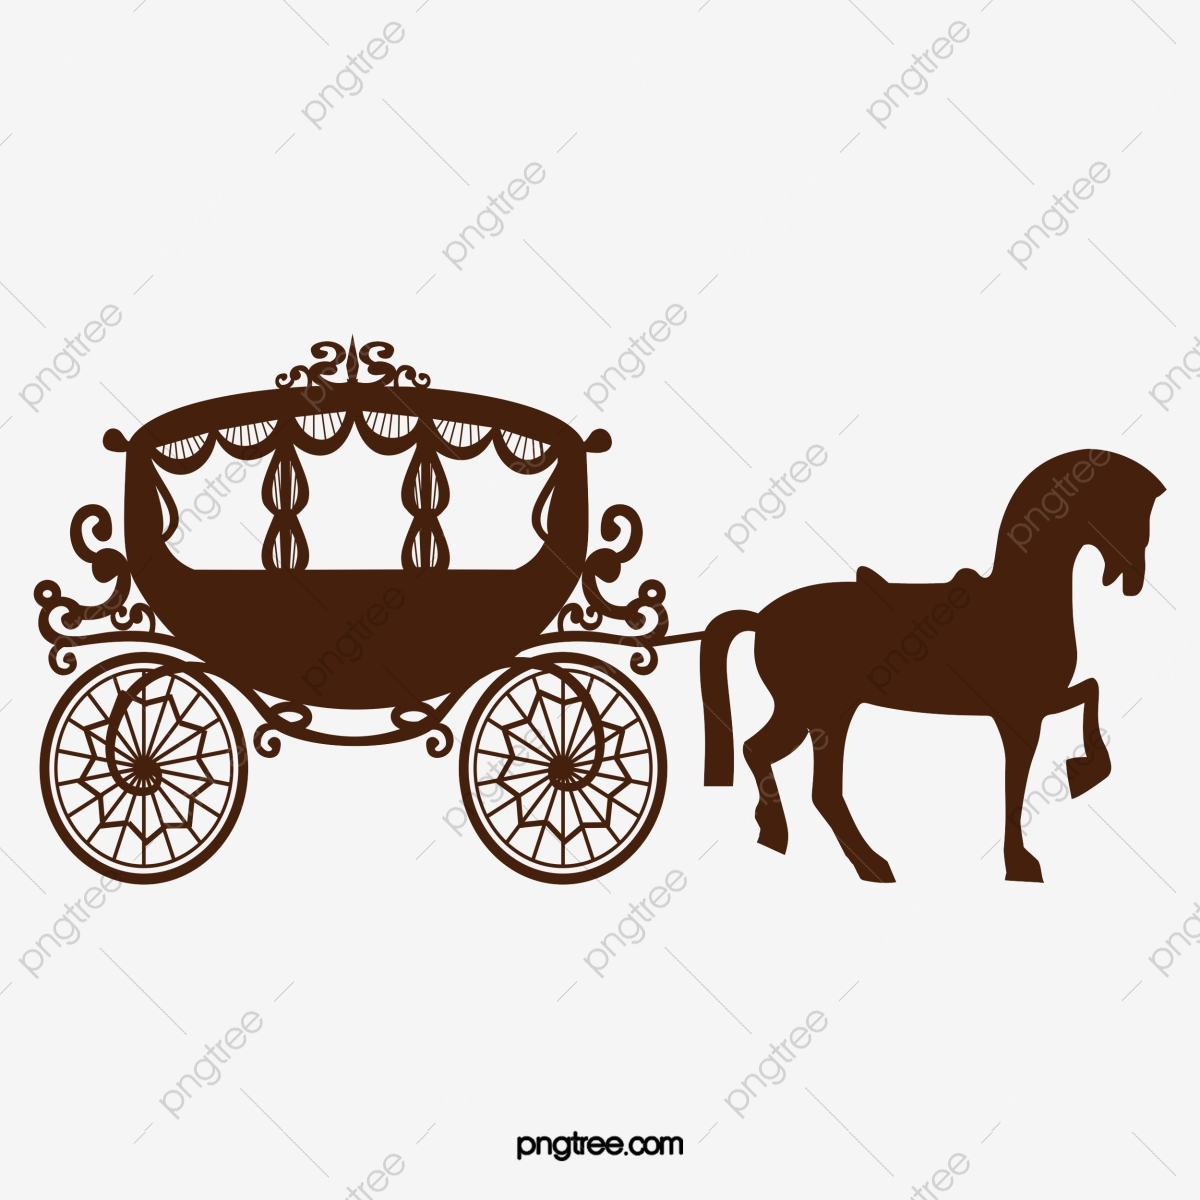 Carriage clipart transparent background. Dark horse vector png